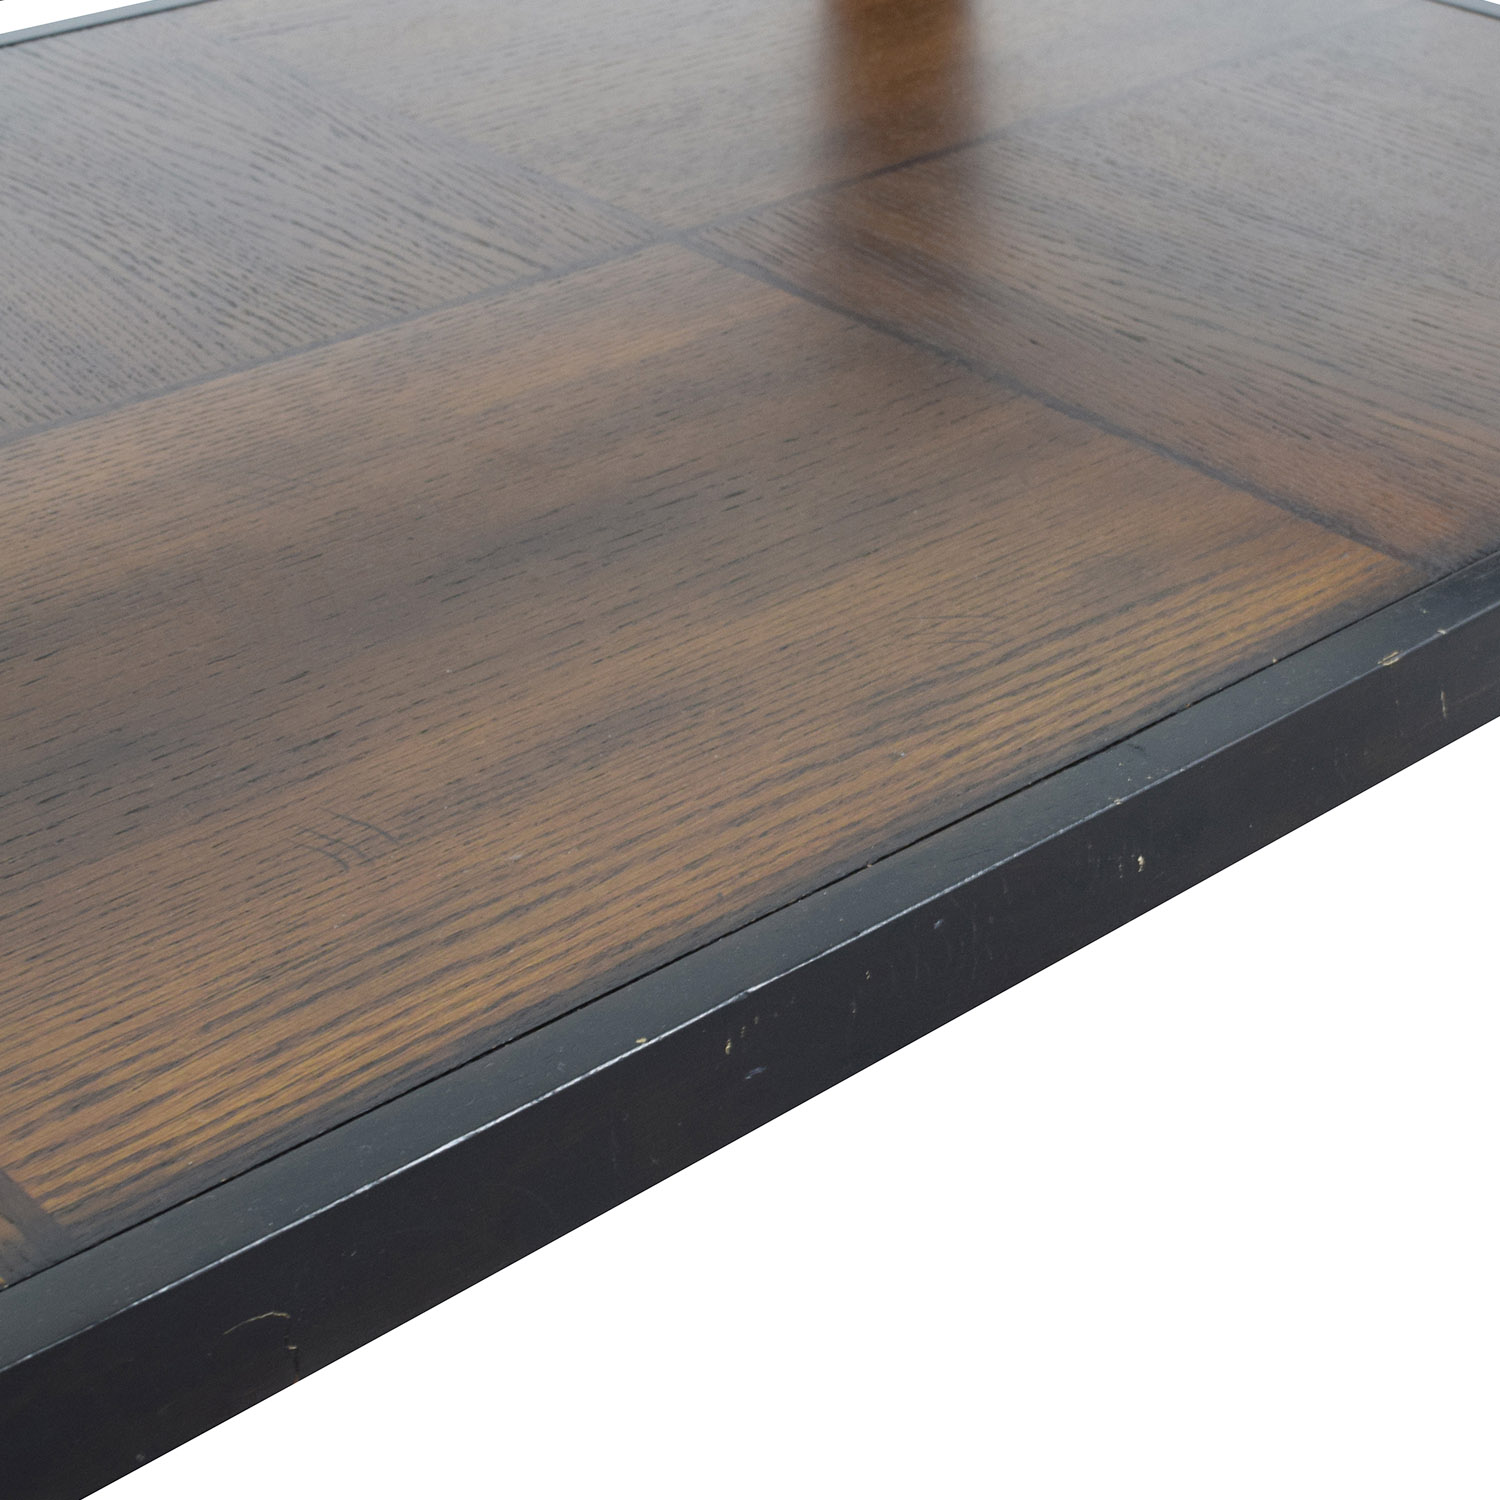 Macys Glass and Wood Coffee Table / Tables